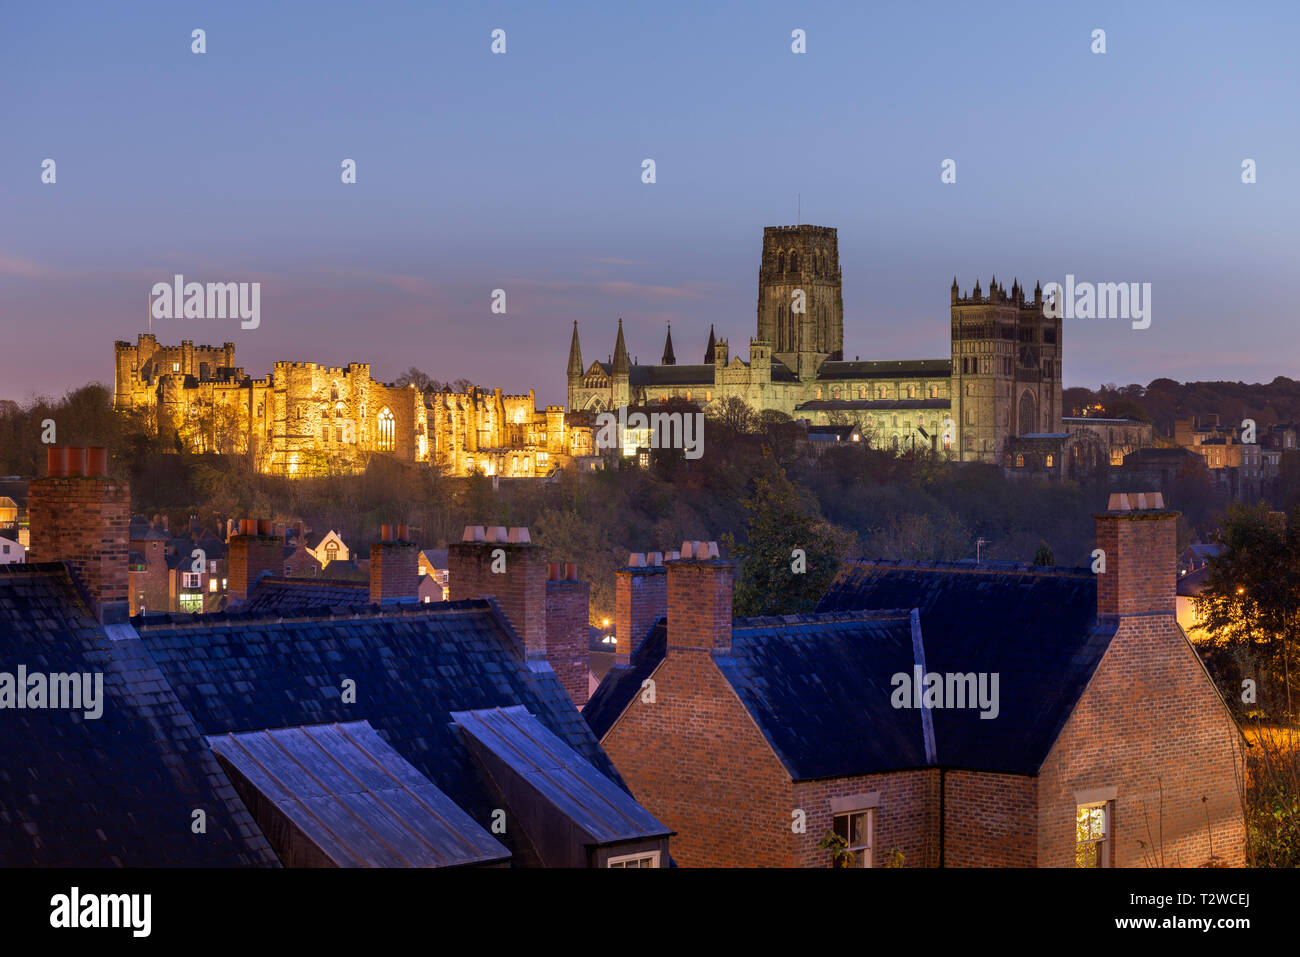 Durham Castle and Cathedral floodlit at night - Stock Image